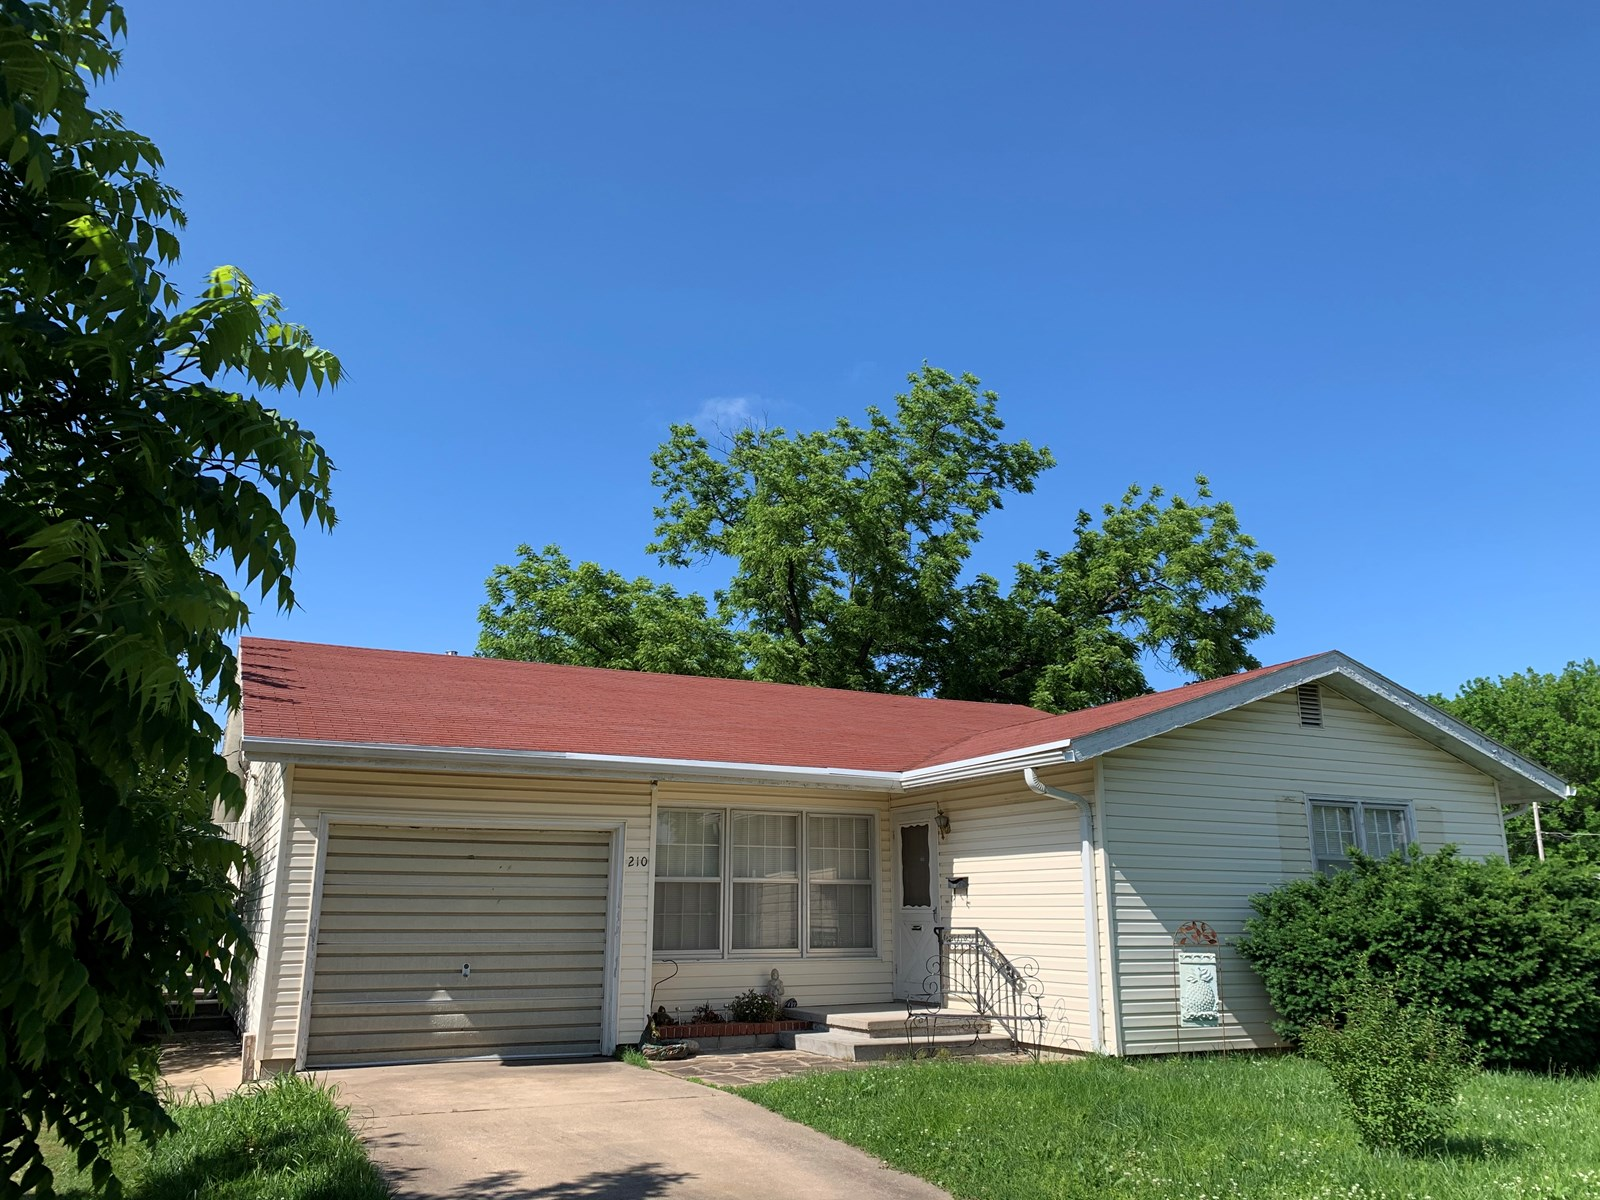 3 Bed 2 Bathroom Ranch with in walking distance to downtown.